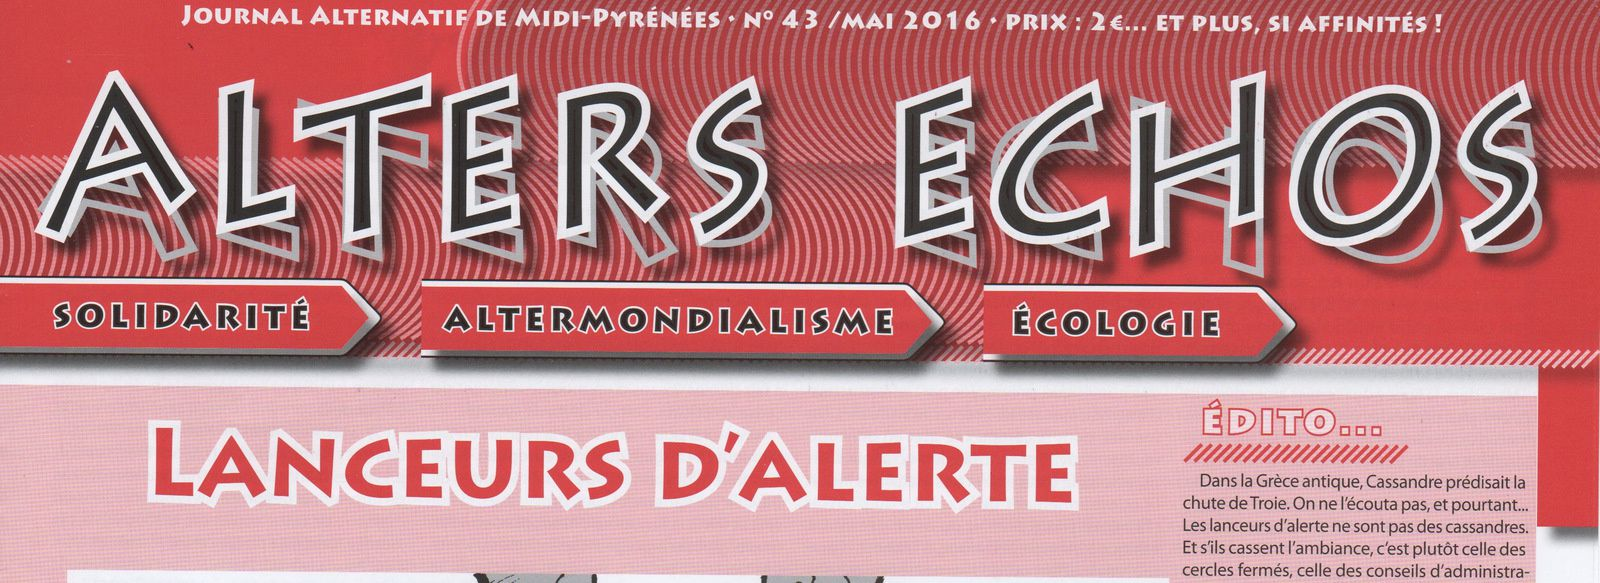 ALTERS ECHOS : journal alternatif de Midi-Pyrénées